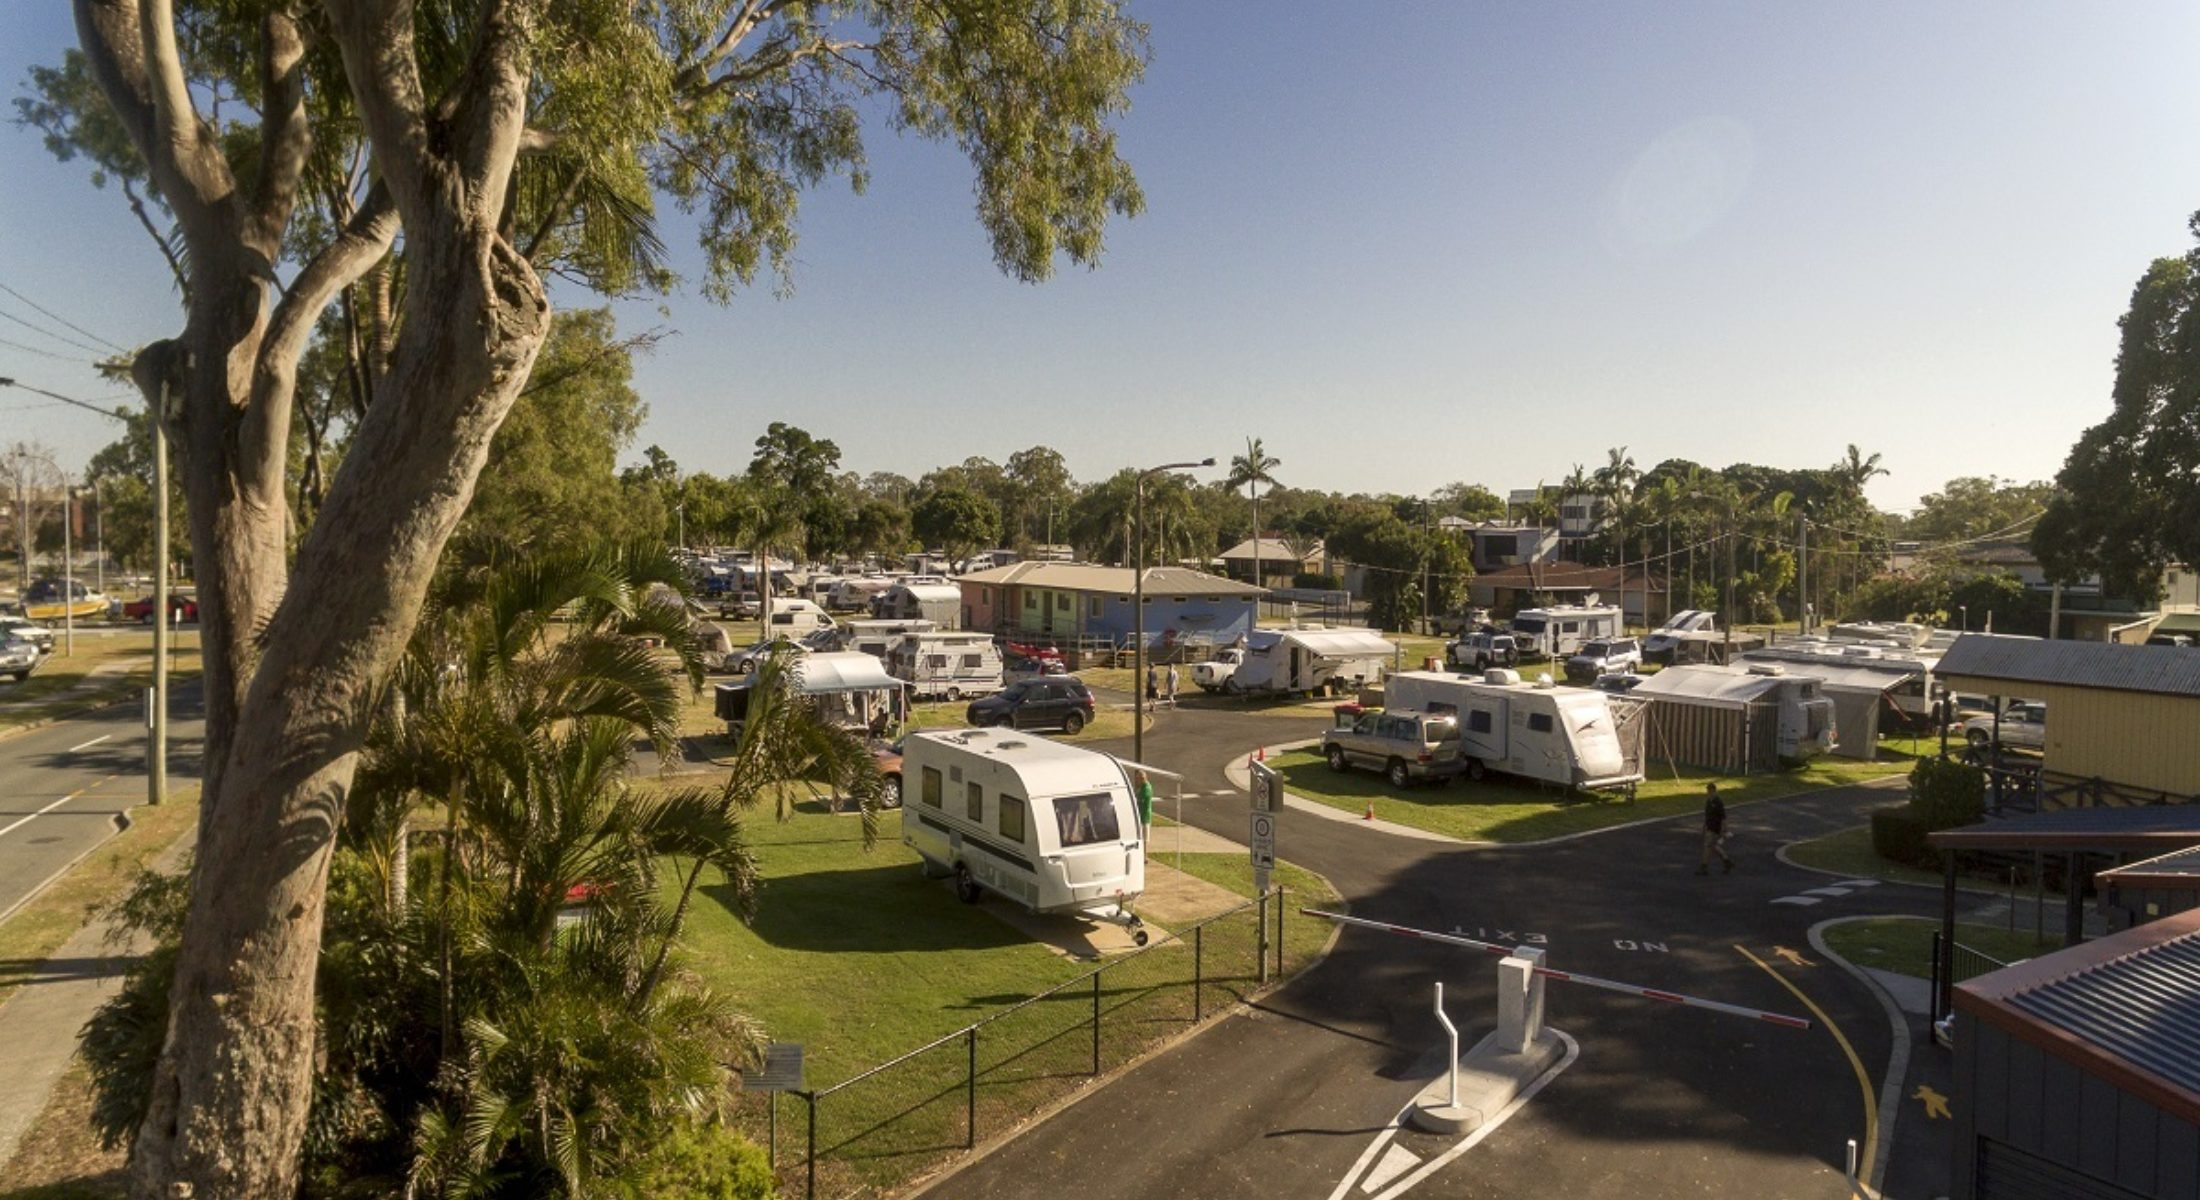 Apollo Bayside Caravan Park Motor Home Holiday Moreton Bay Region